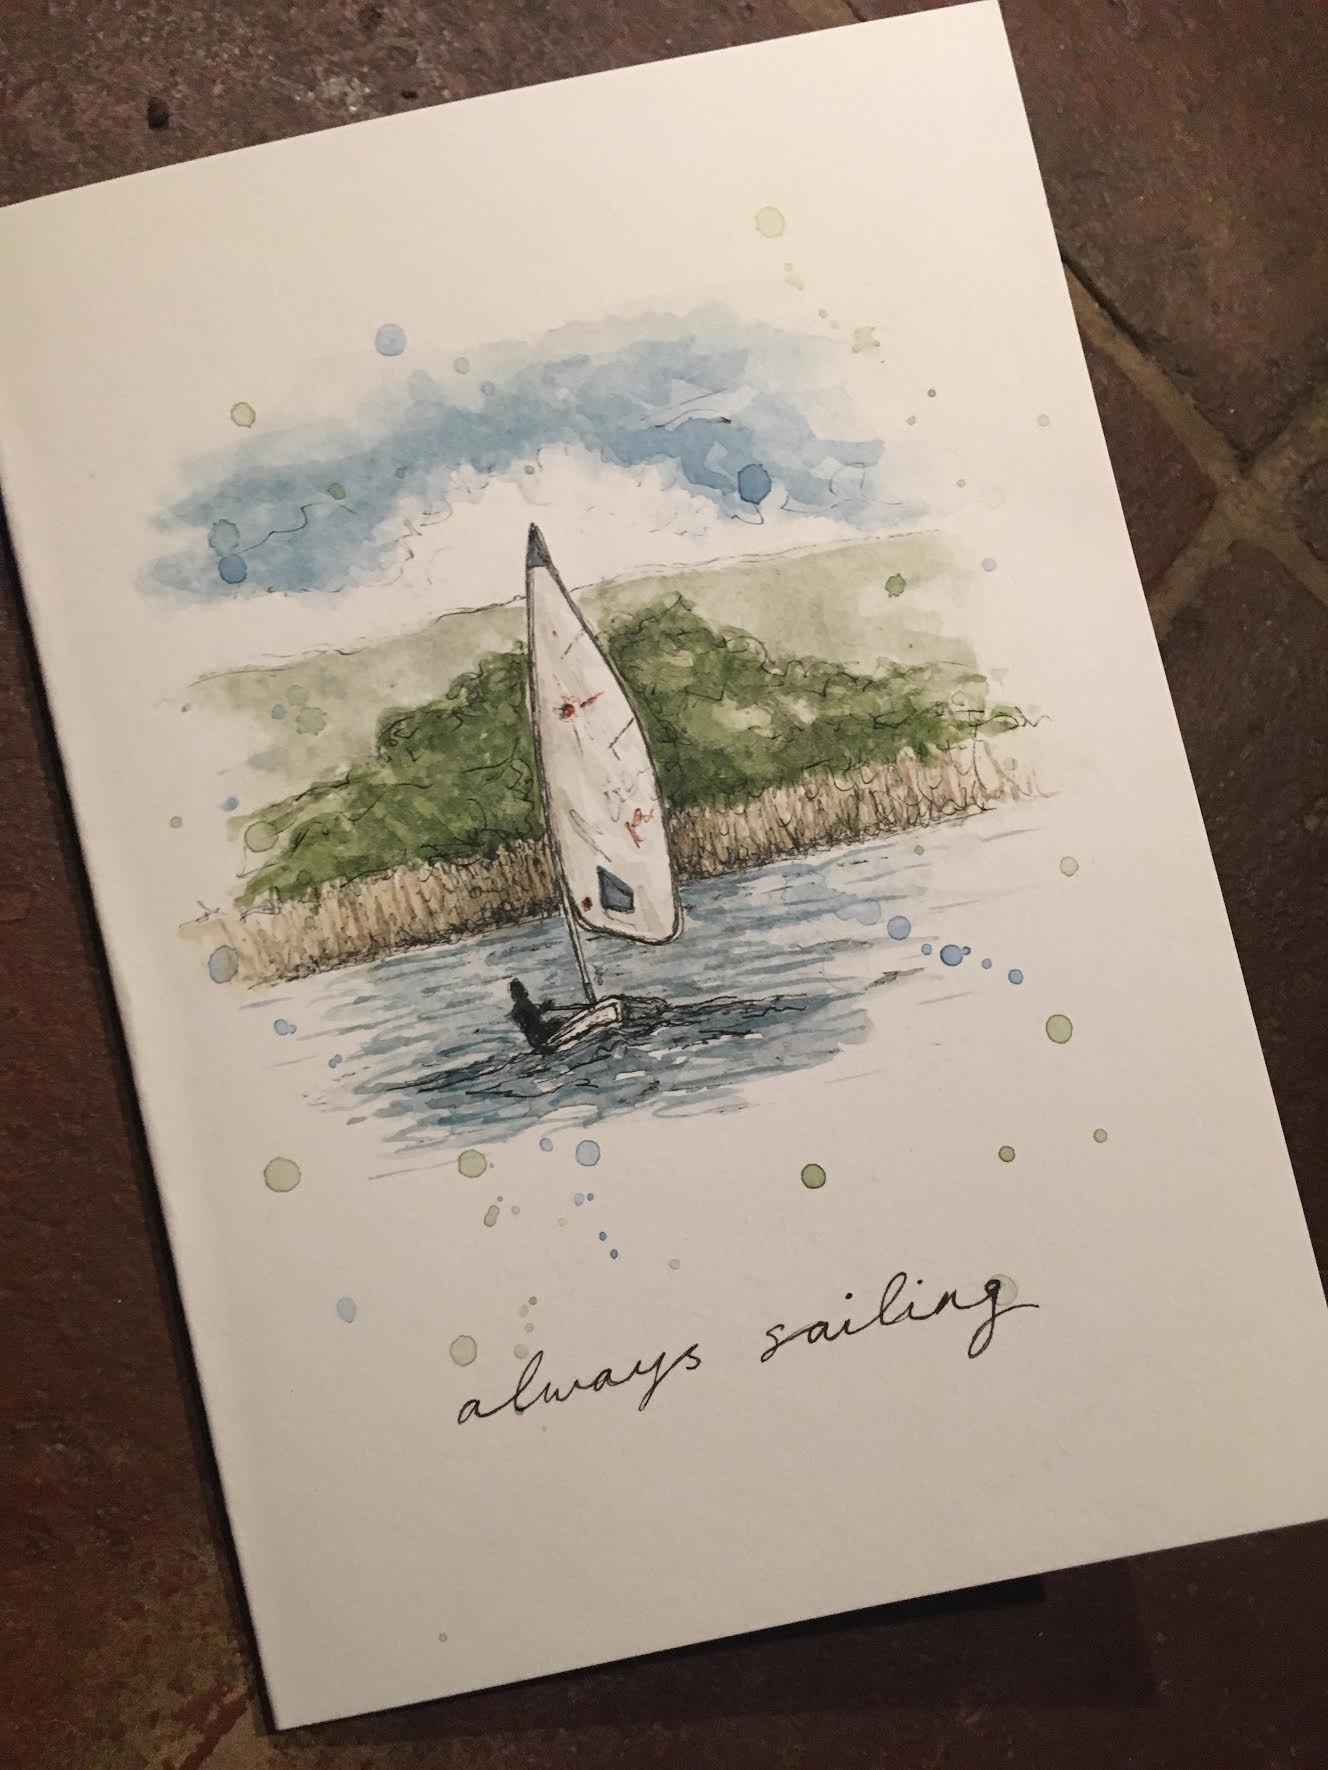 ALWAYS SAILING